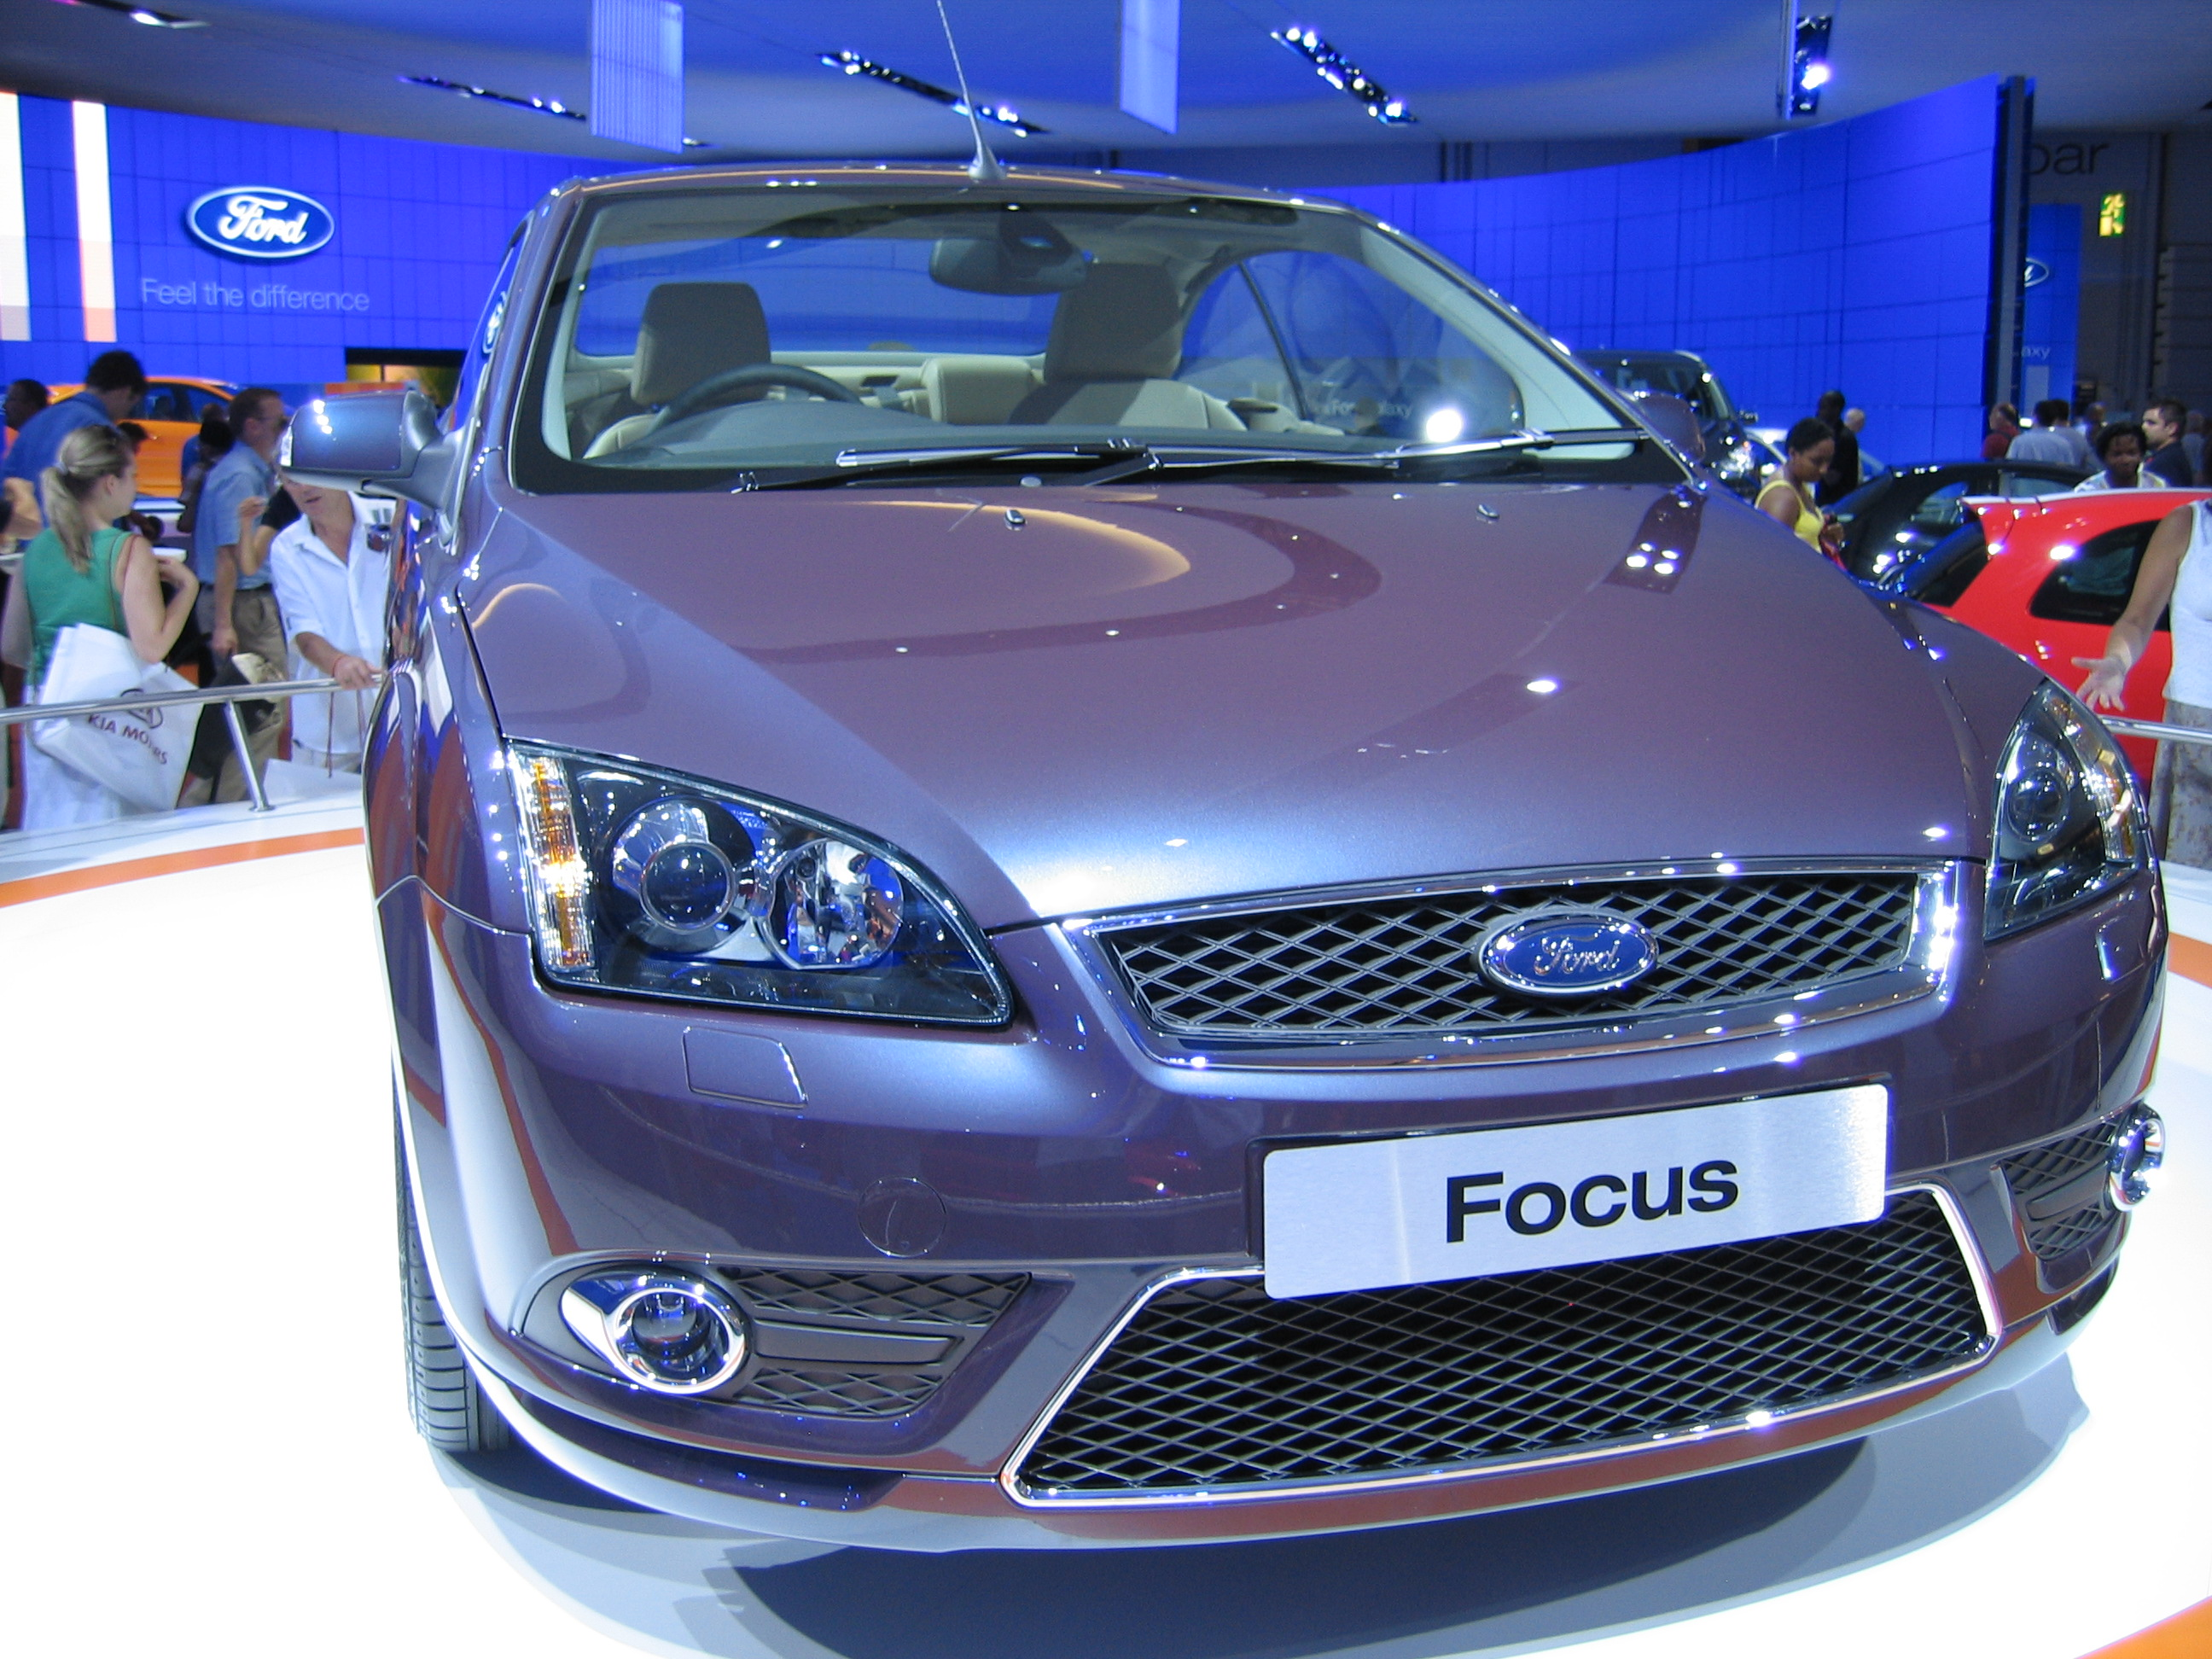 ford focus coupe cabriolet ii 2012 wallpaper auto. Black Bedroom Furniture Sets. Home Design Ideas